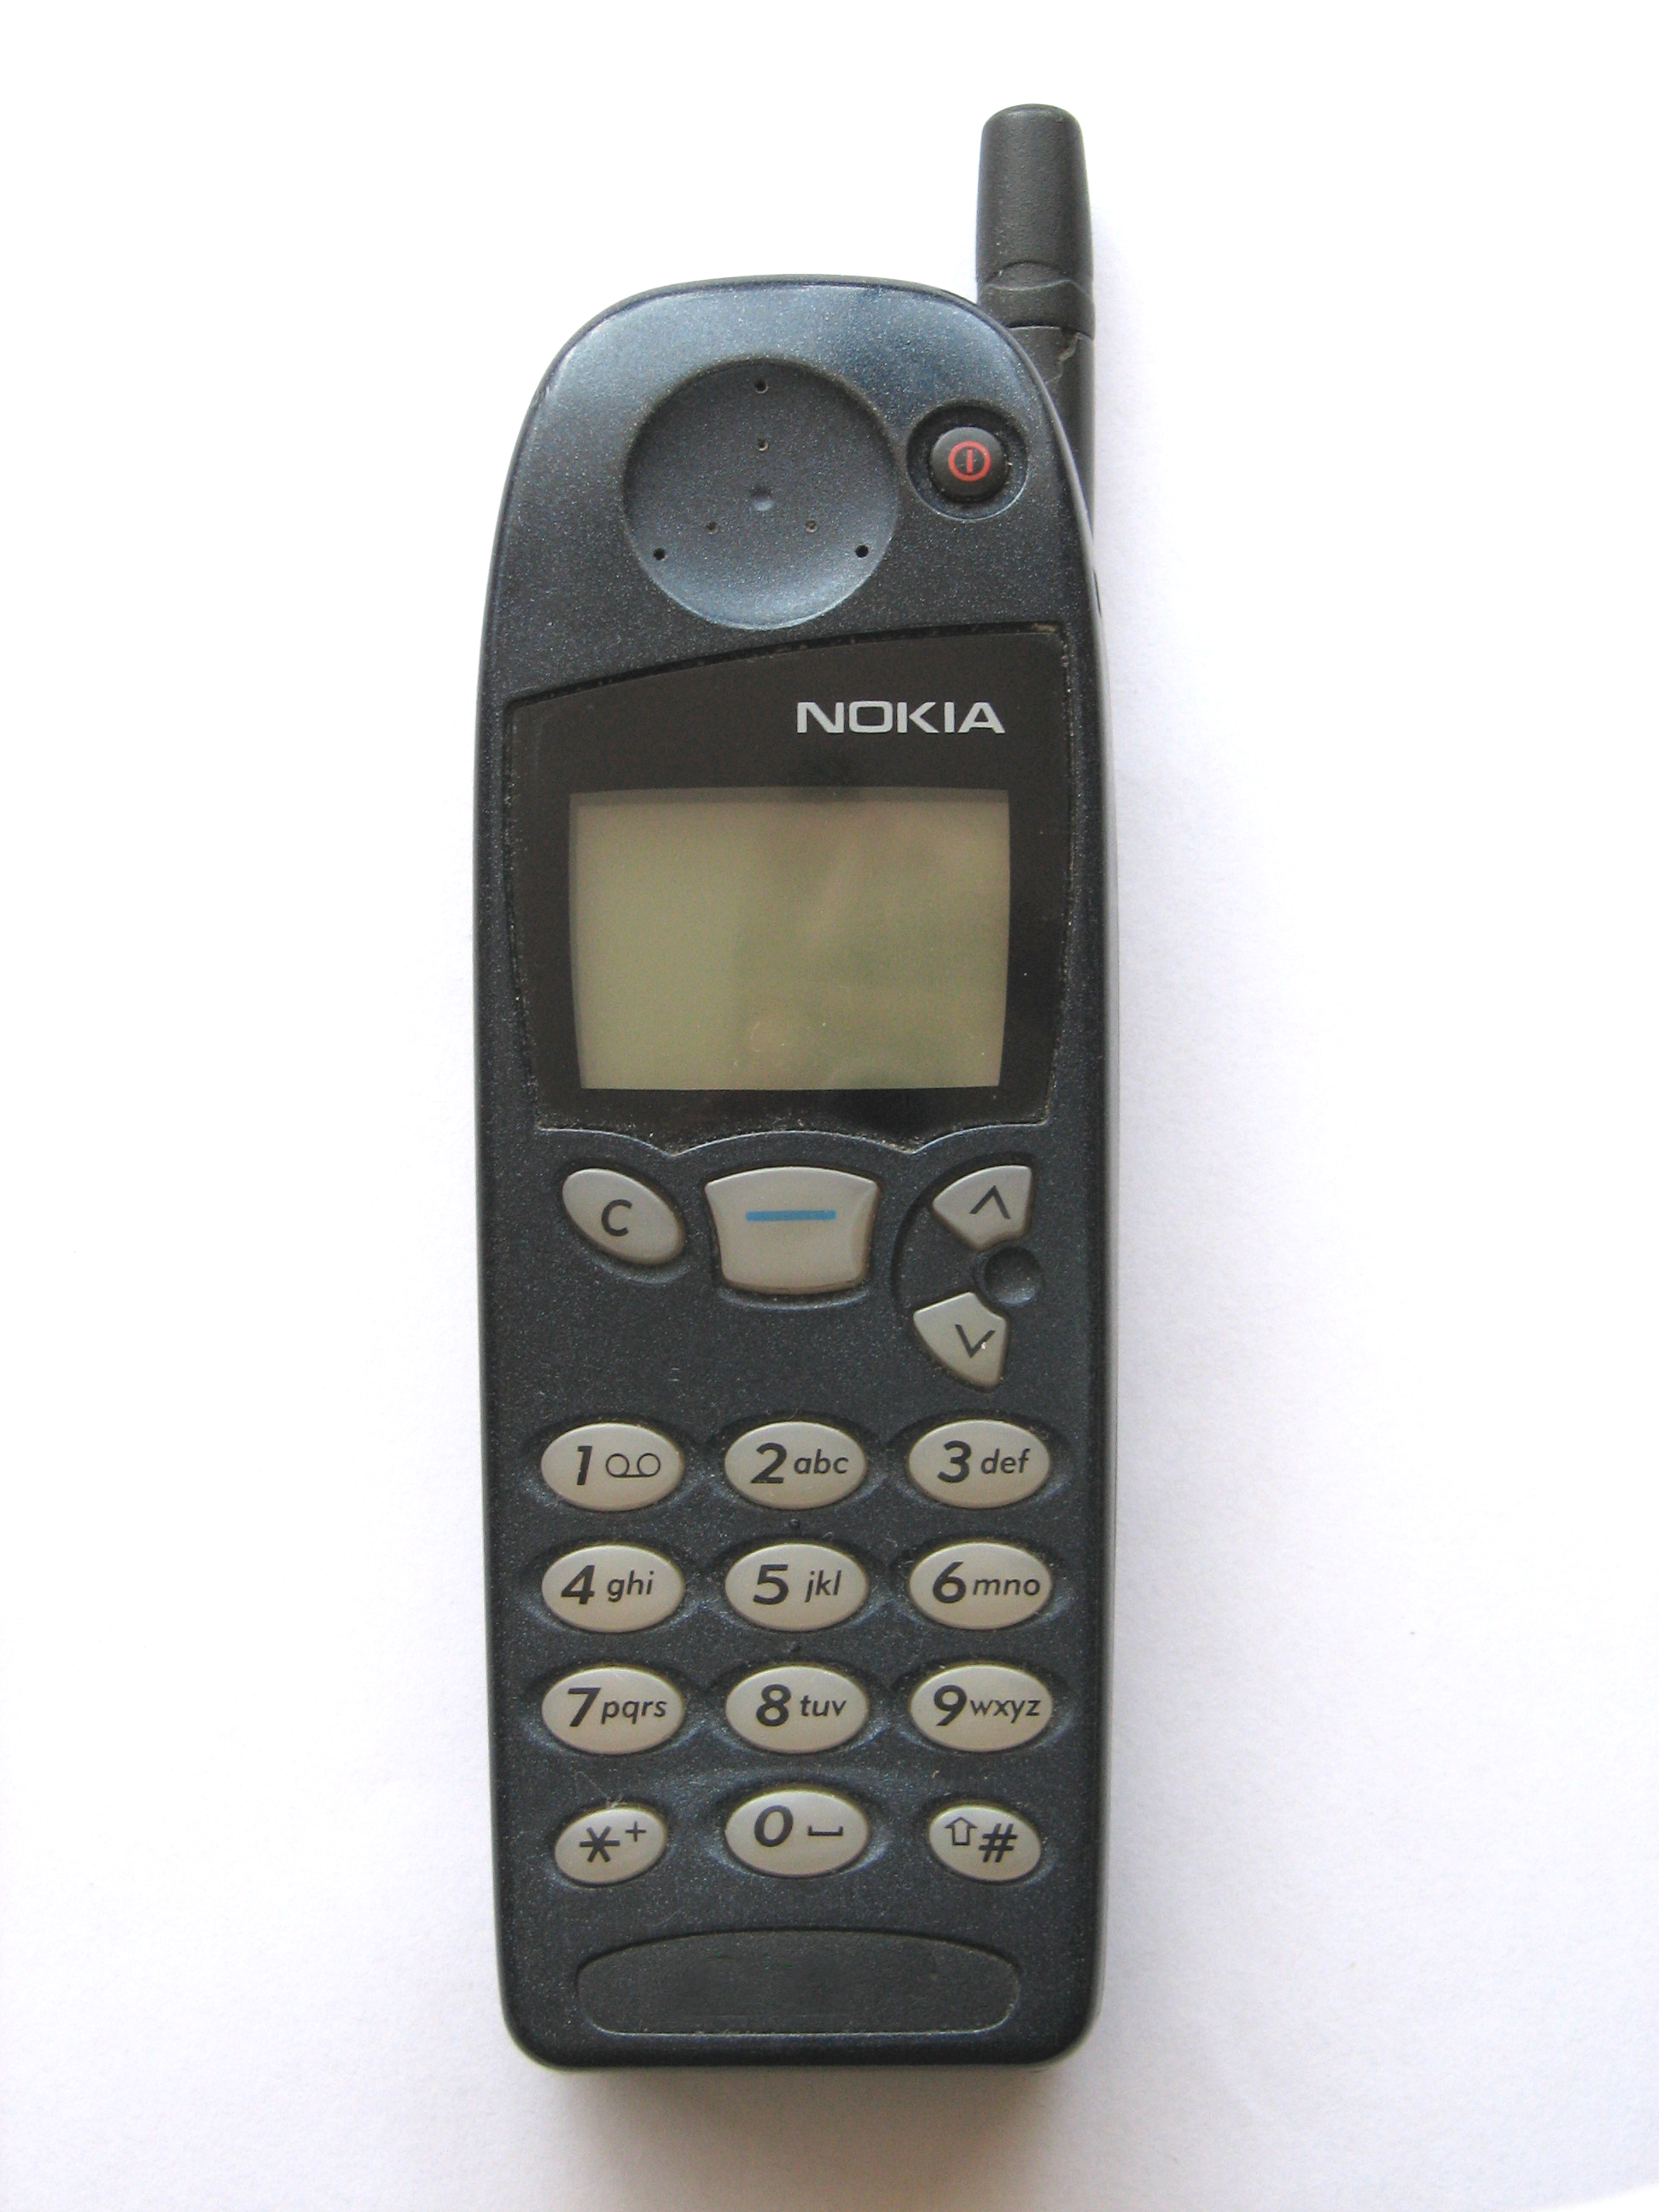 http://upload.wikimedia.org/wikipedia/commons/5/58/Nokia_5110.jpg